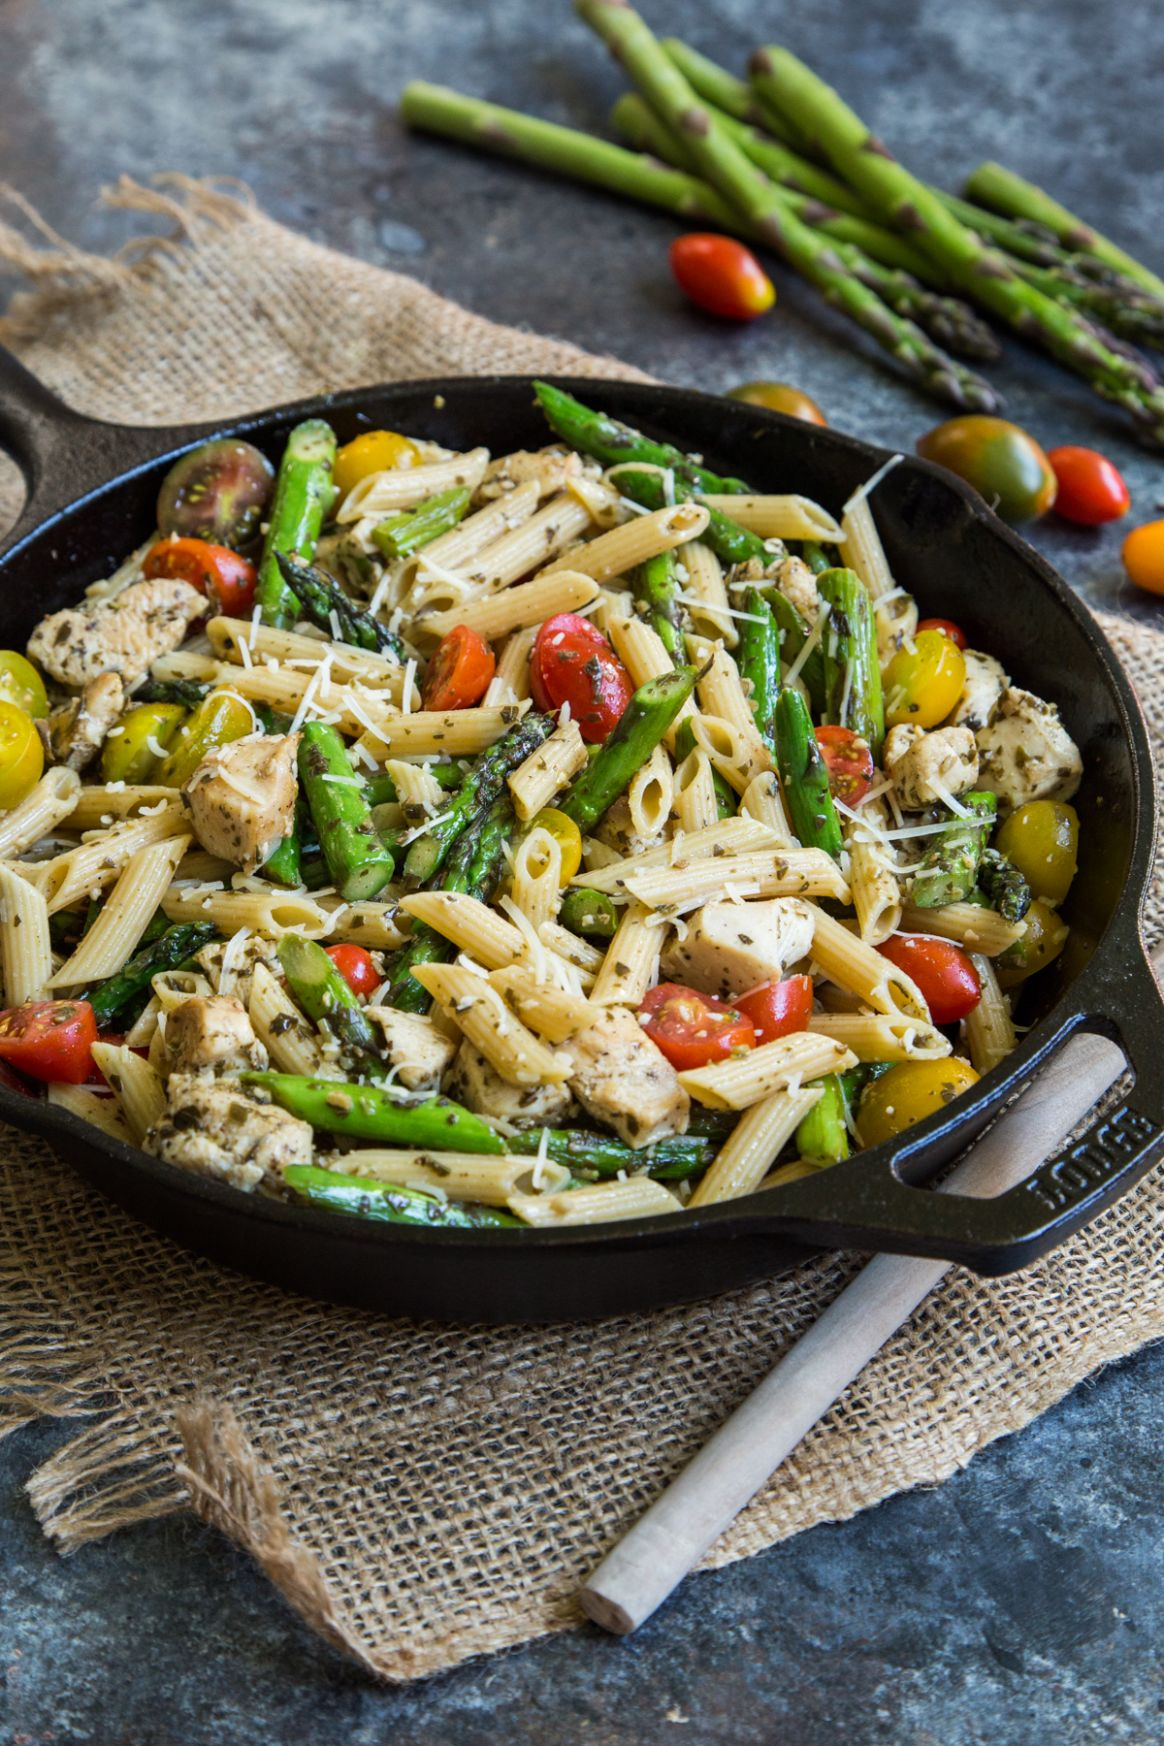 Pesto Chicken Pasta Skillet with Asparagus and Tomatoes - Recipes Pasta Asparagus